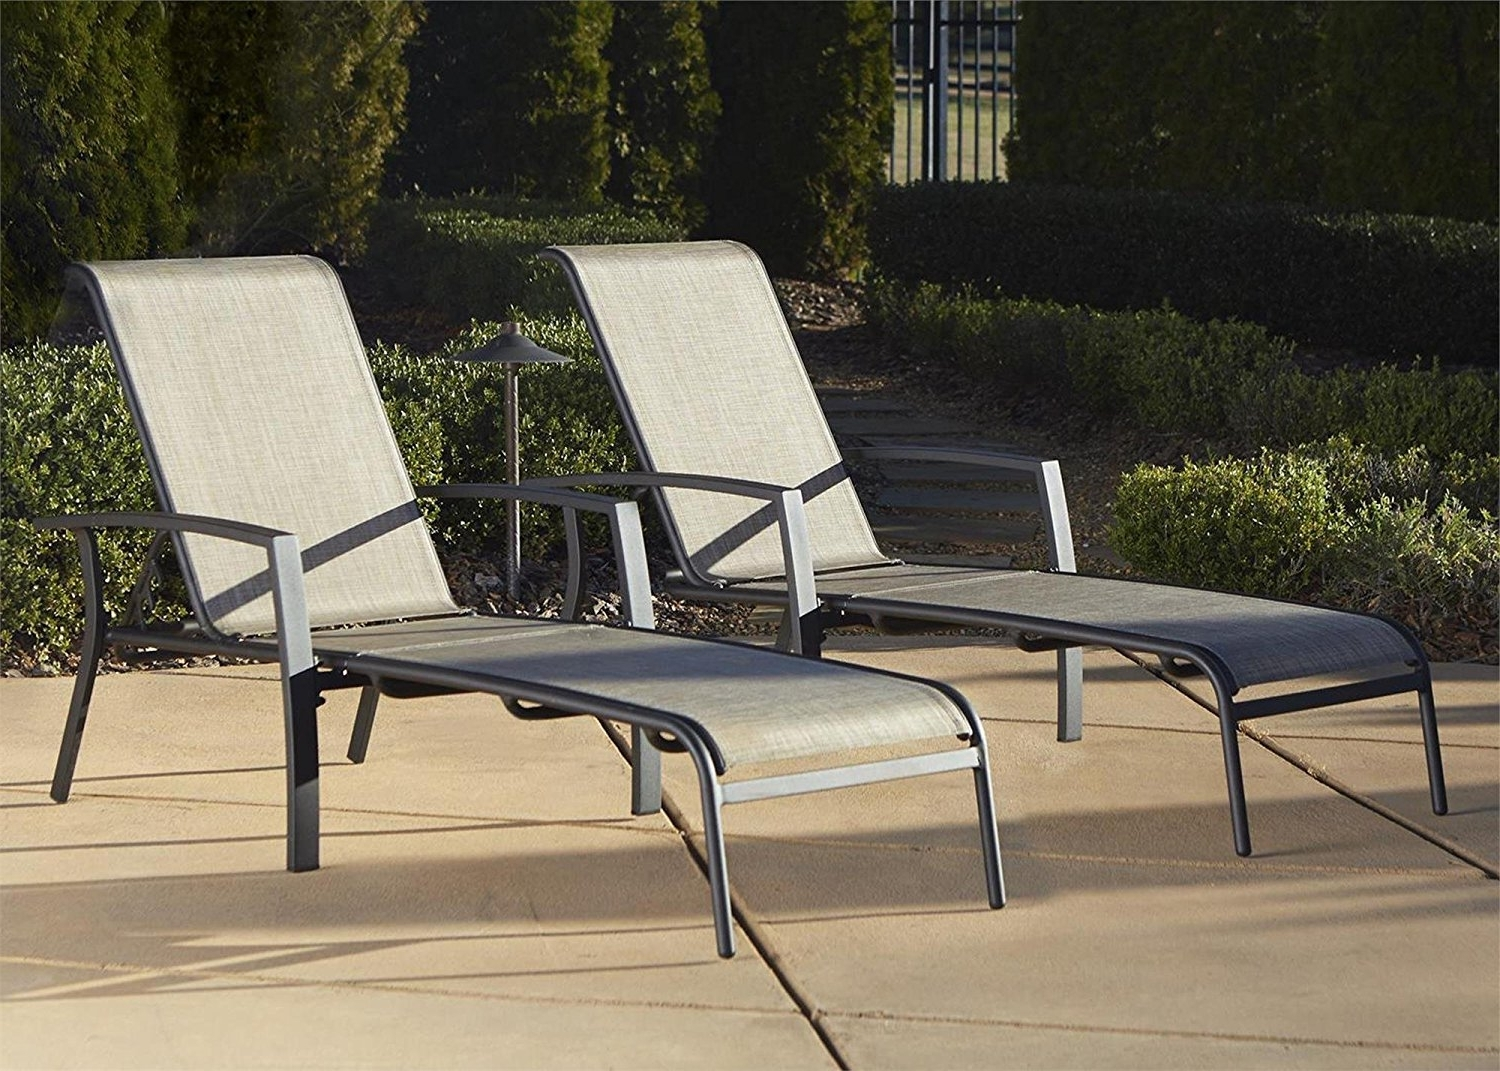 Most Popular Cast Aluminum Chaise Lounges With Wheels With Amazon: Cosco Outdoor Adjustable Aluminum Chaise Lounge Chair (View 14 of 15)